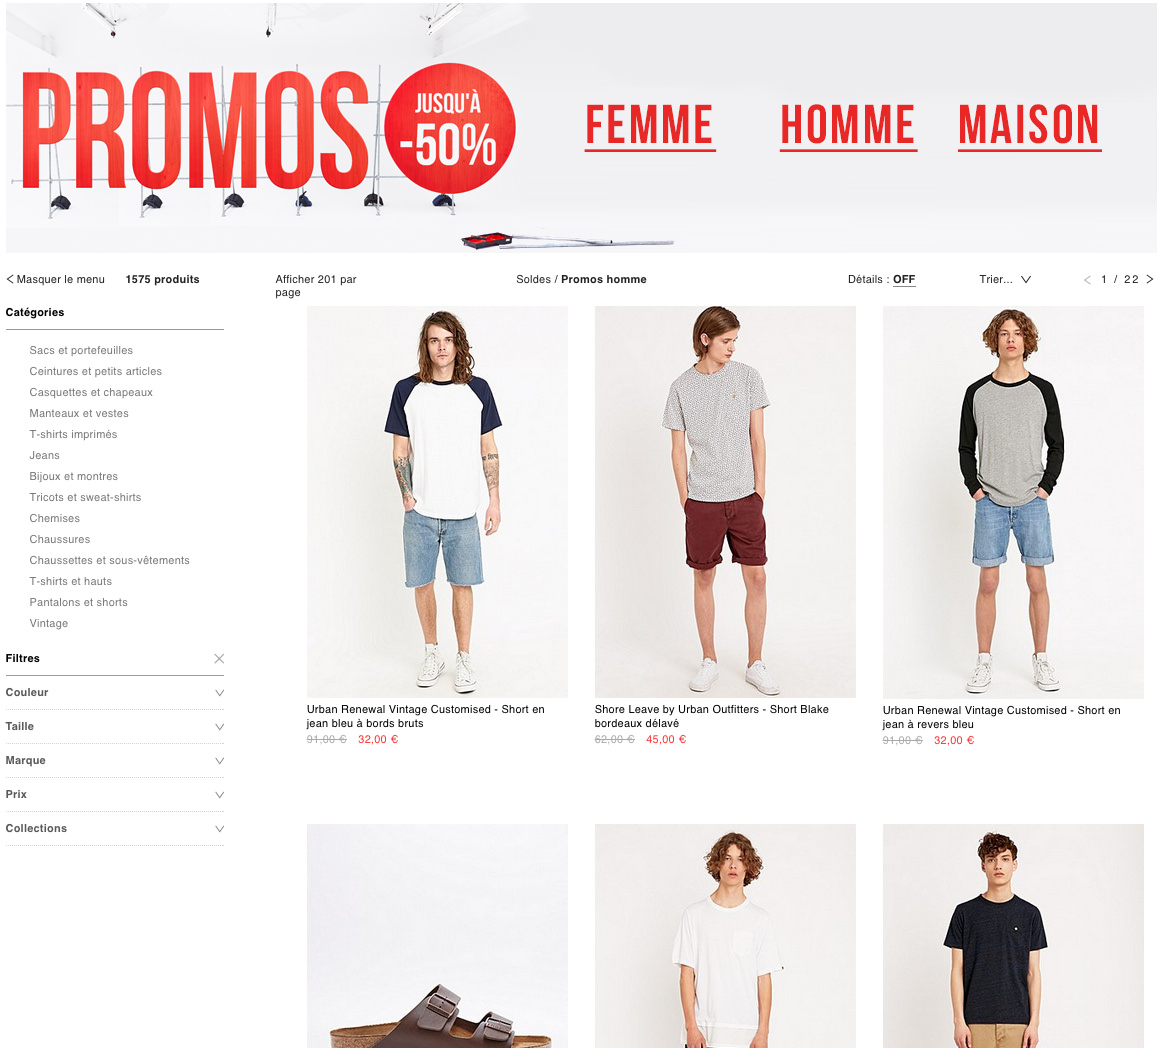 urban-outfitters-soldes